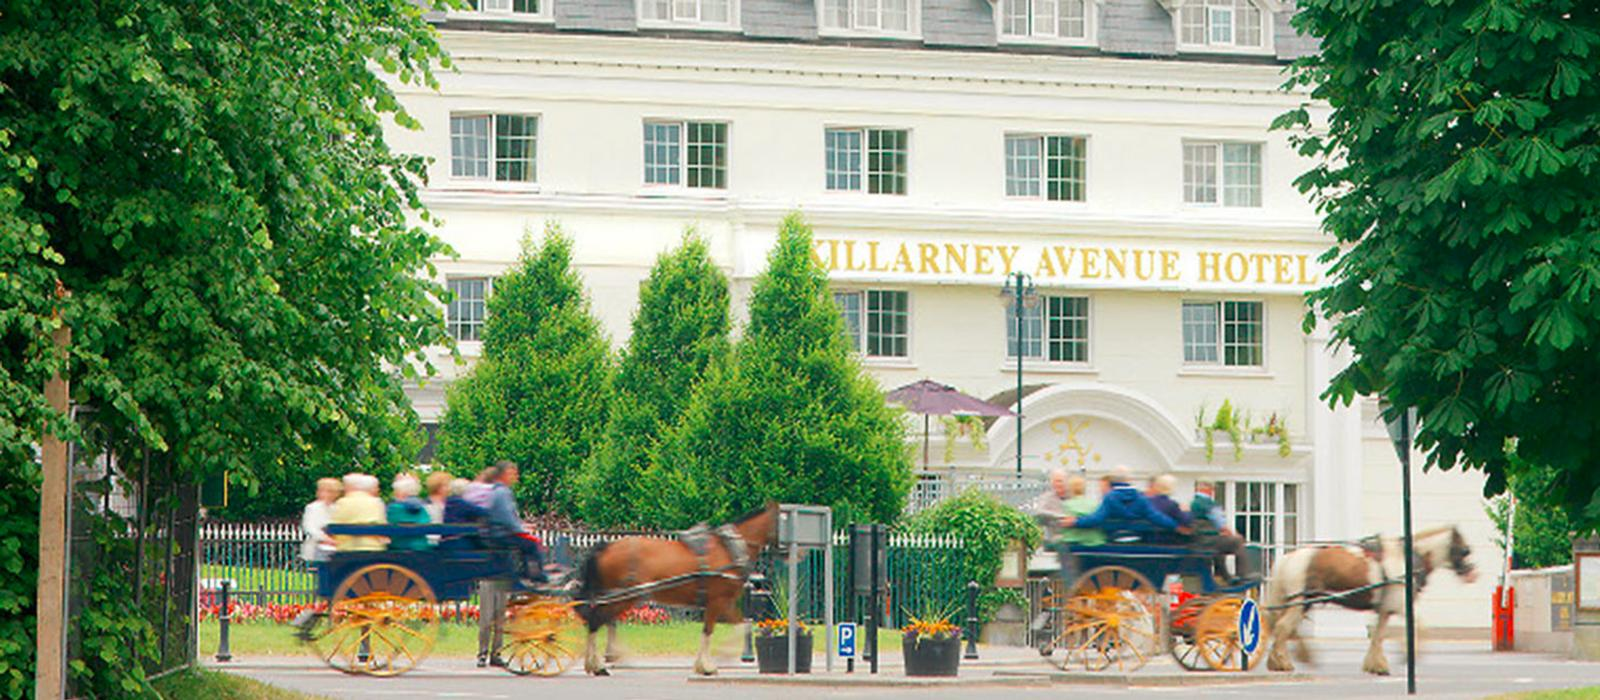 careers in Killarney Avenue Hotel